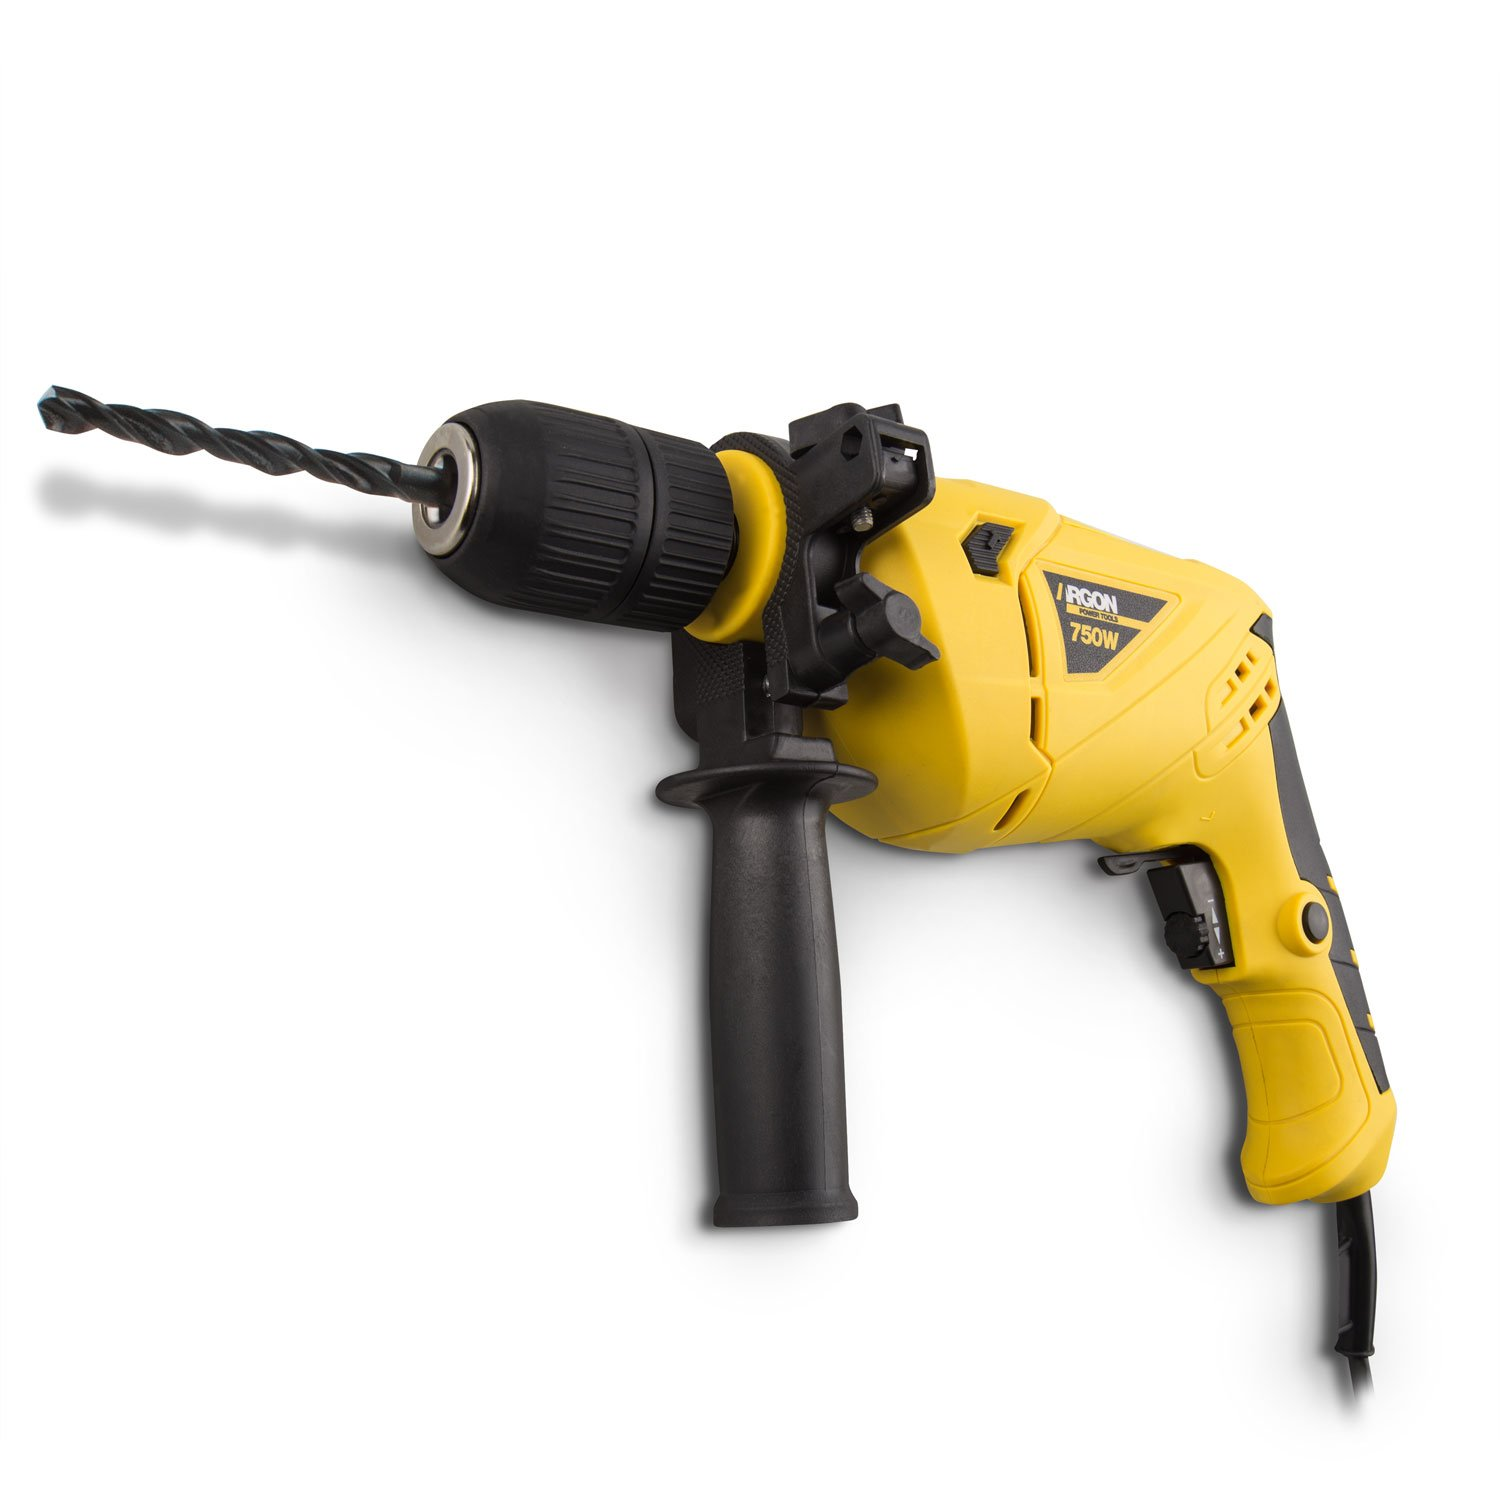 Argon Power Tools Taladro percutor potencia W  RPM color amarillo